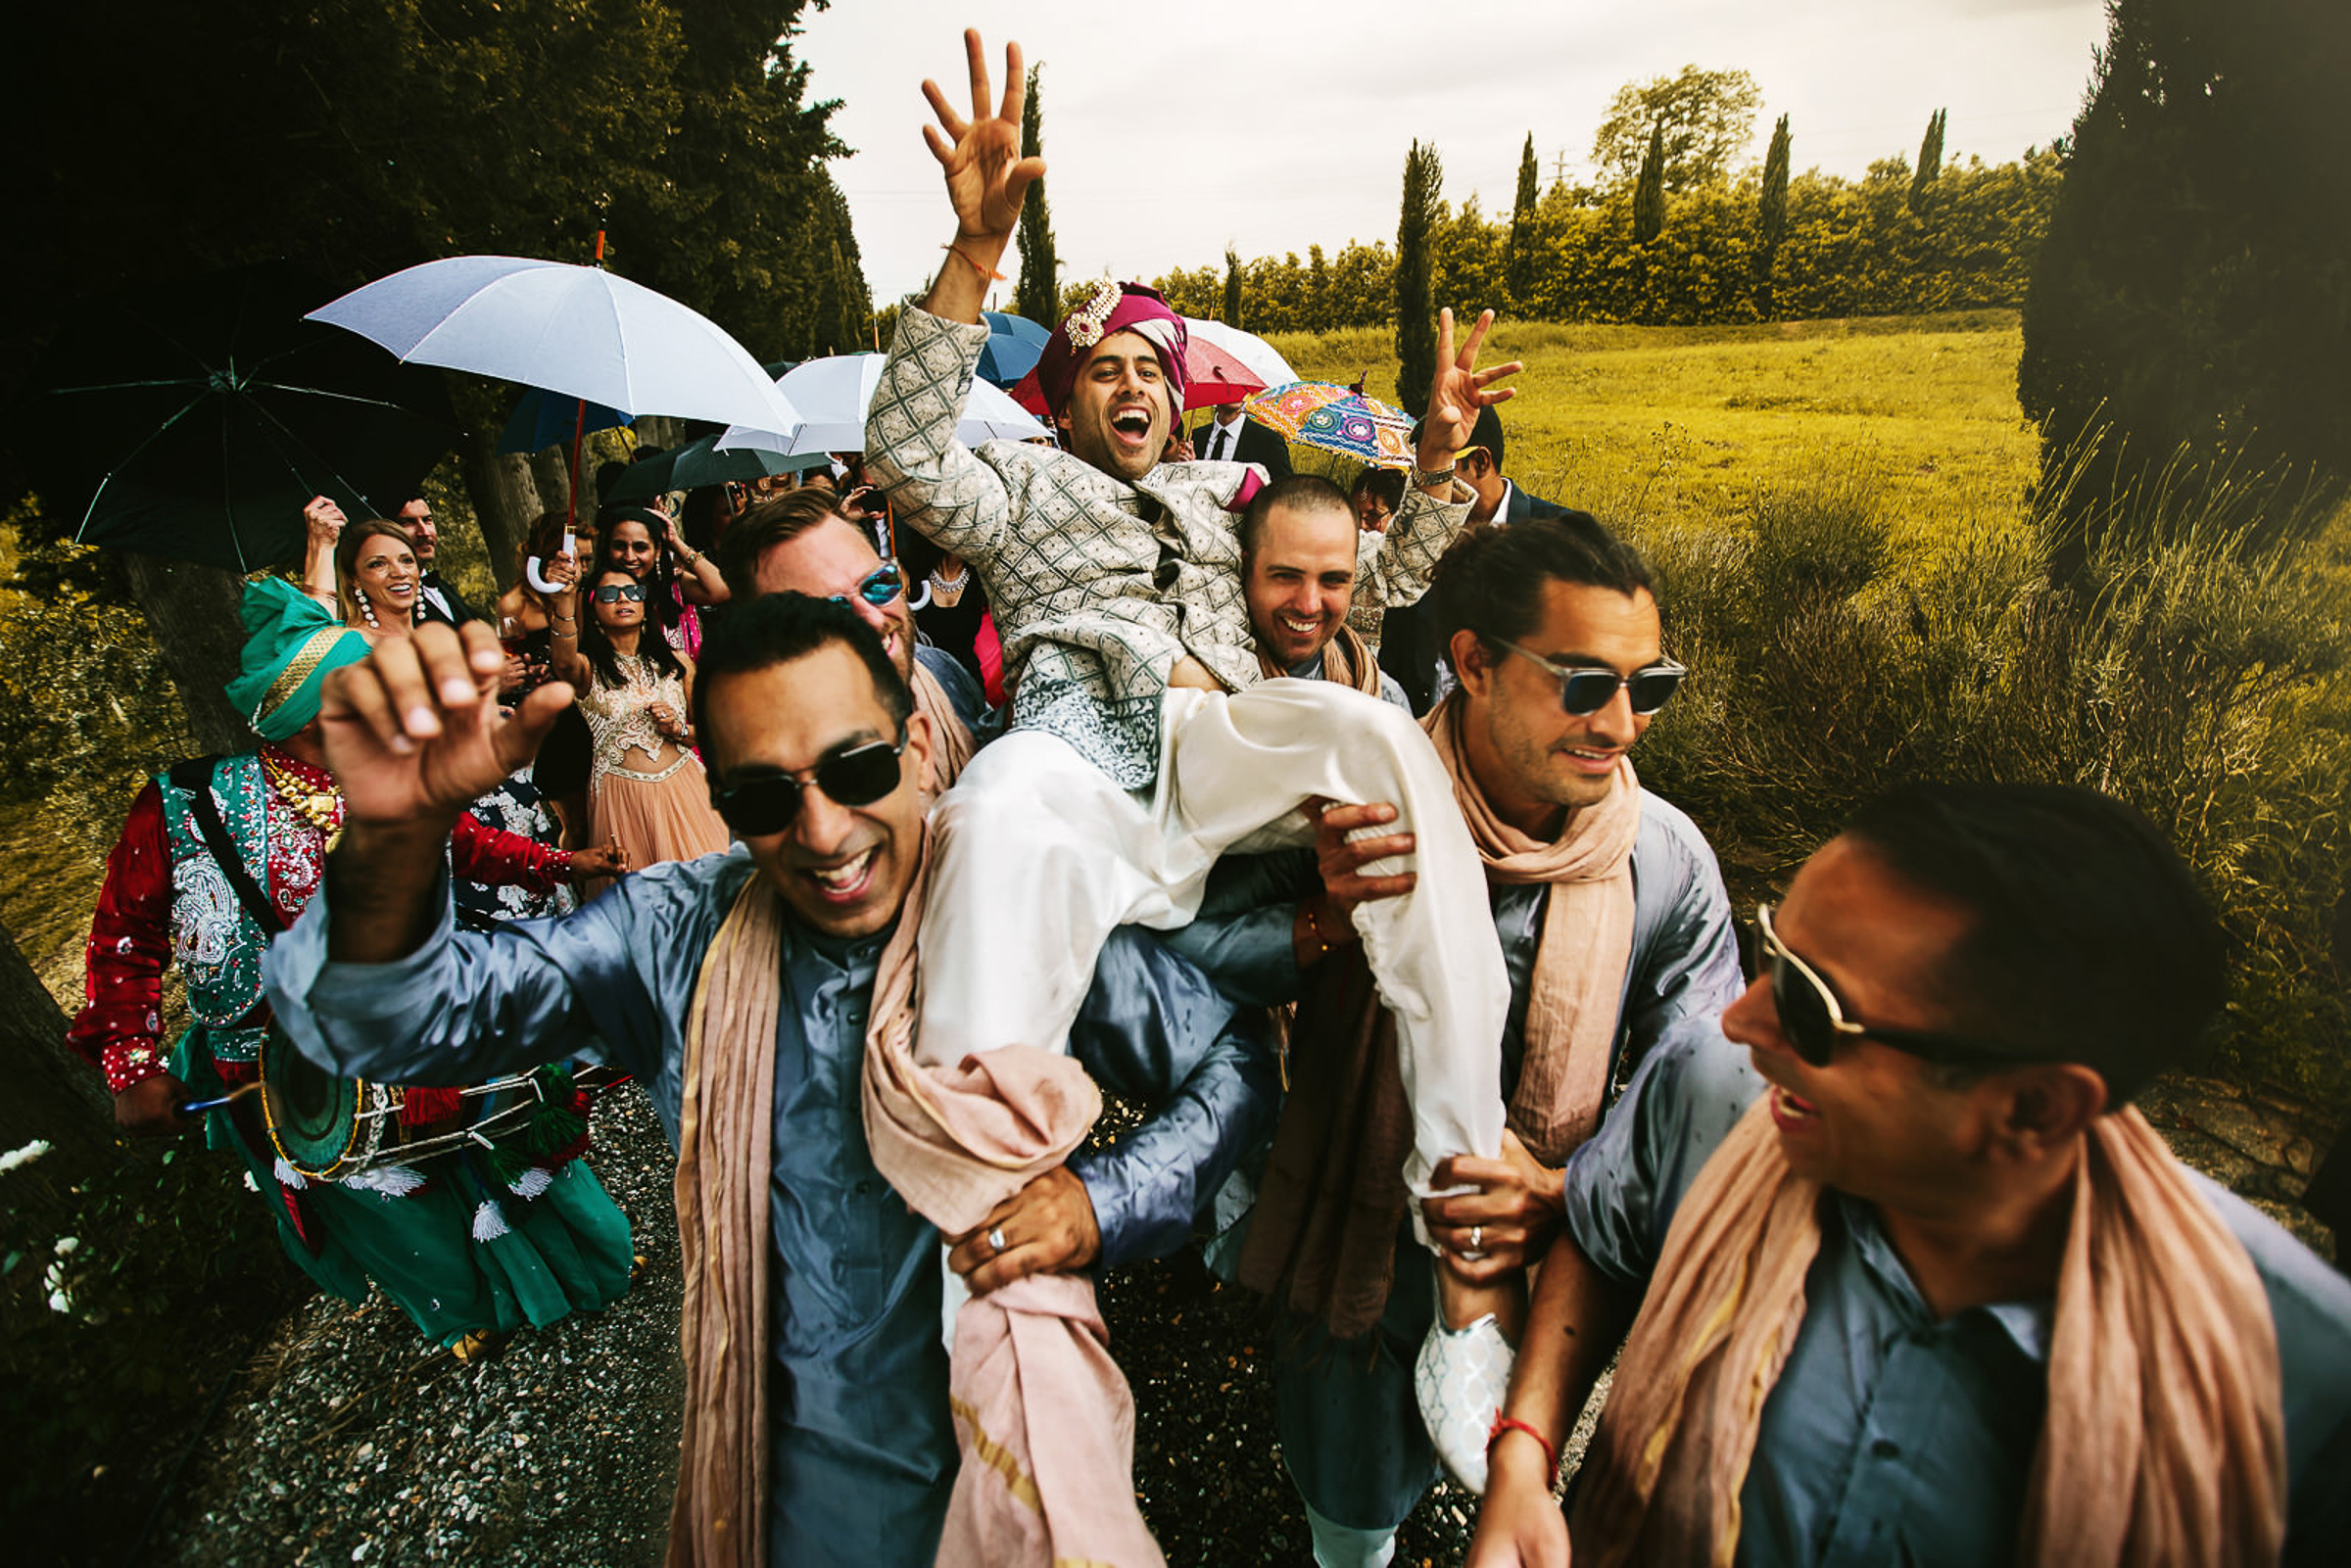 photo-of-groom-being-carried-by-groomsmen-during-indian-wedding-by-rino-cordella-in-puglia-italy